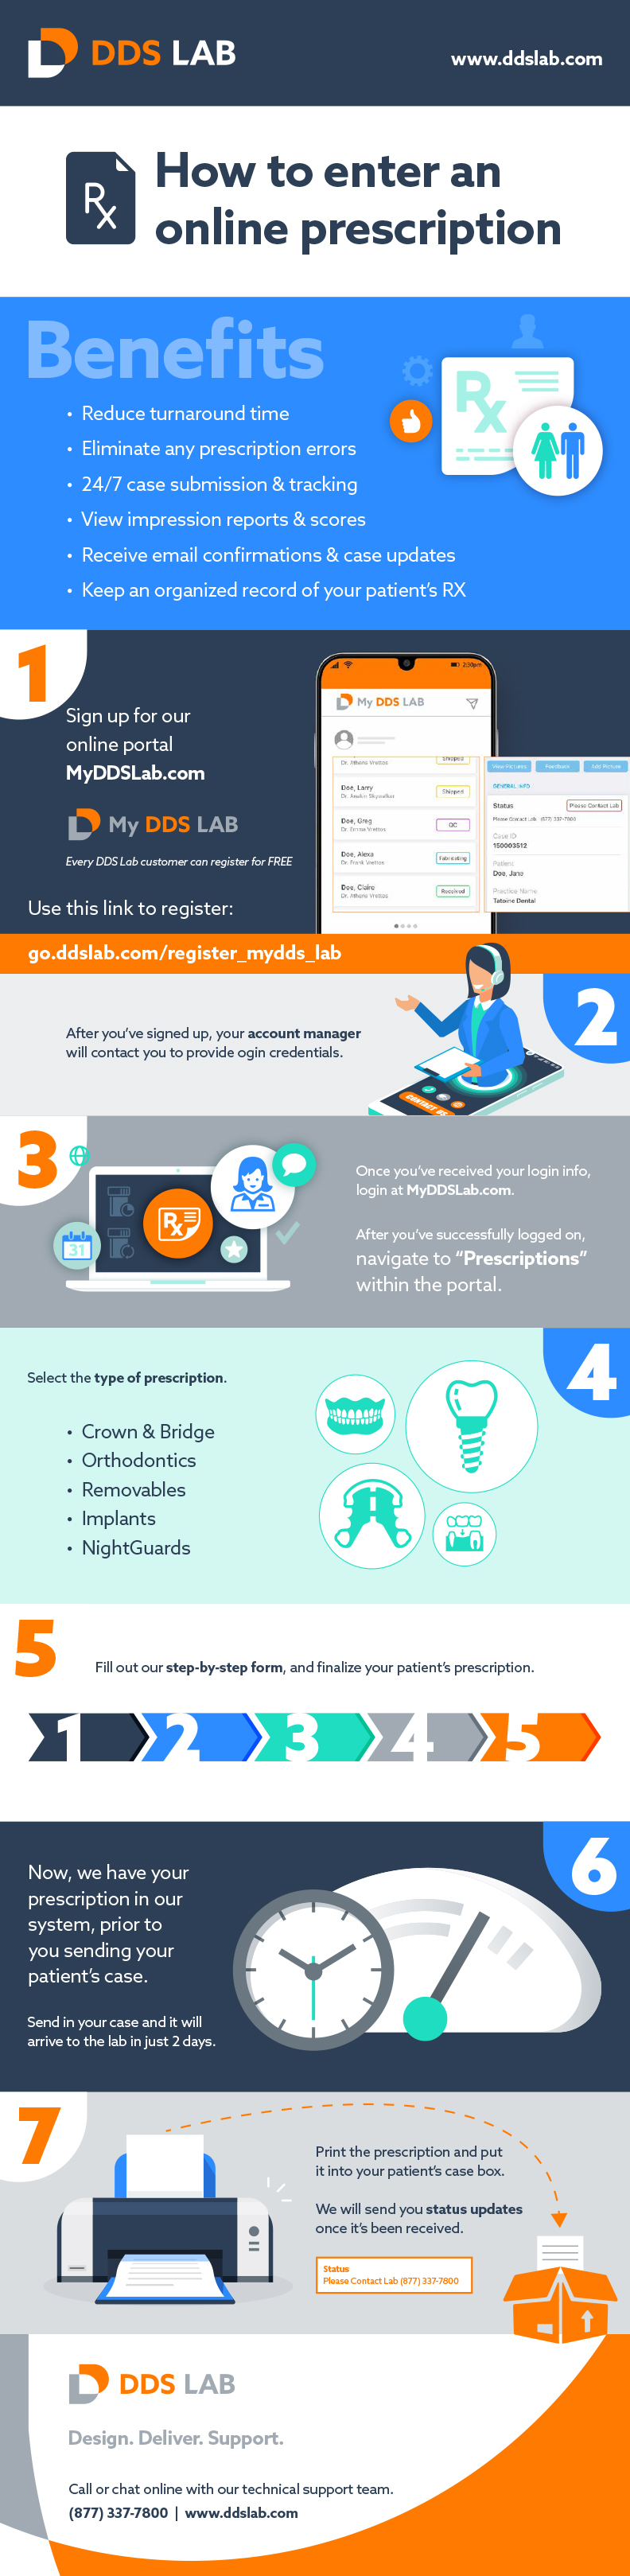 How To Enter An Online Prescription | DDS Lab